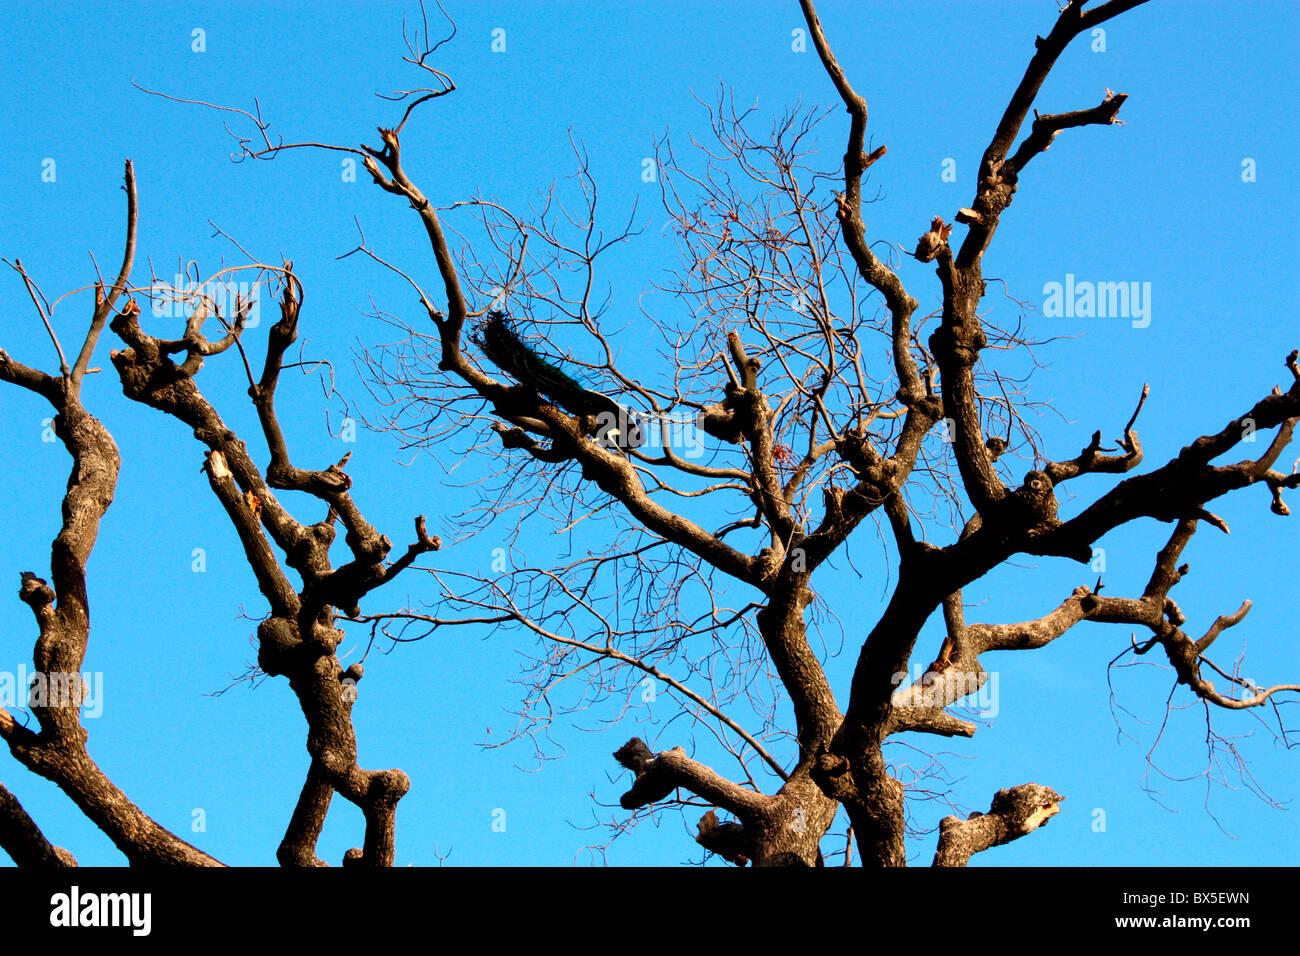 a peacock sitting on  a dead tree - Stock Image